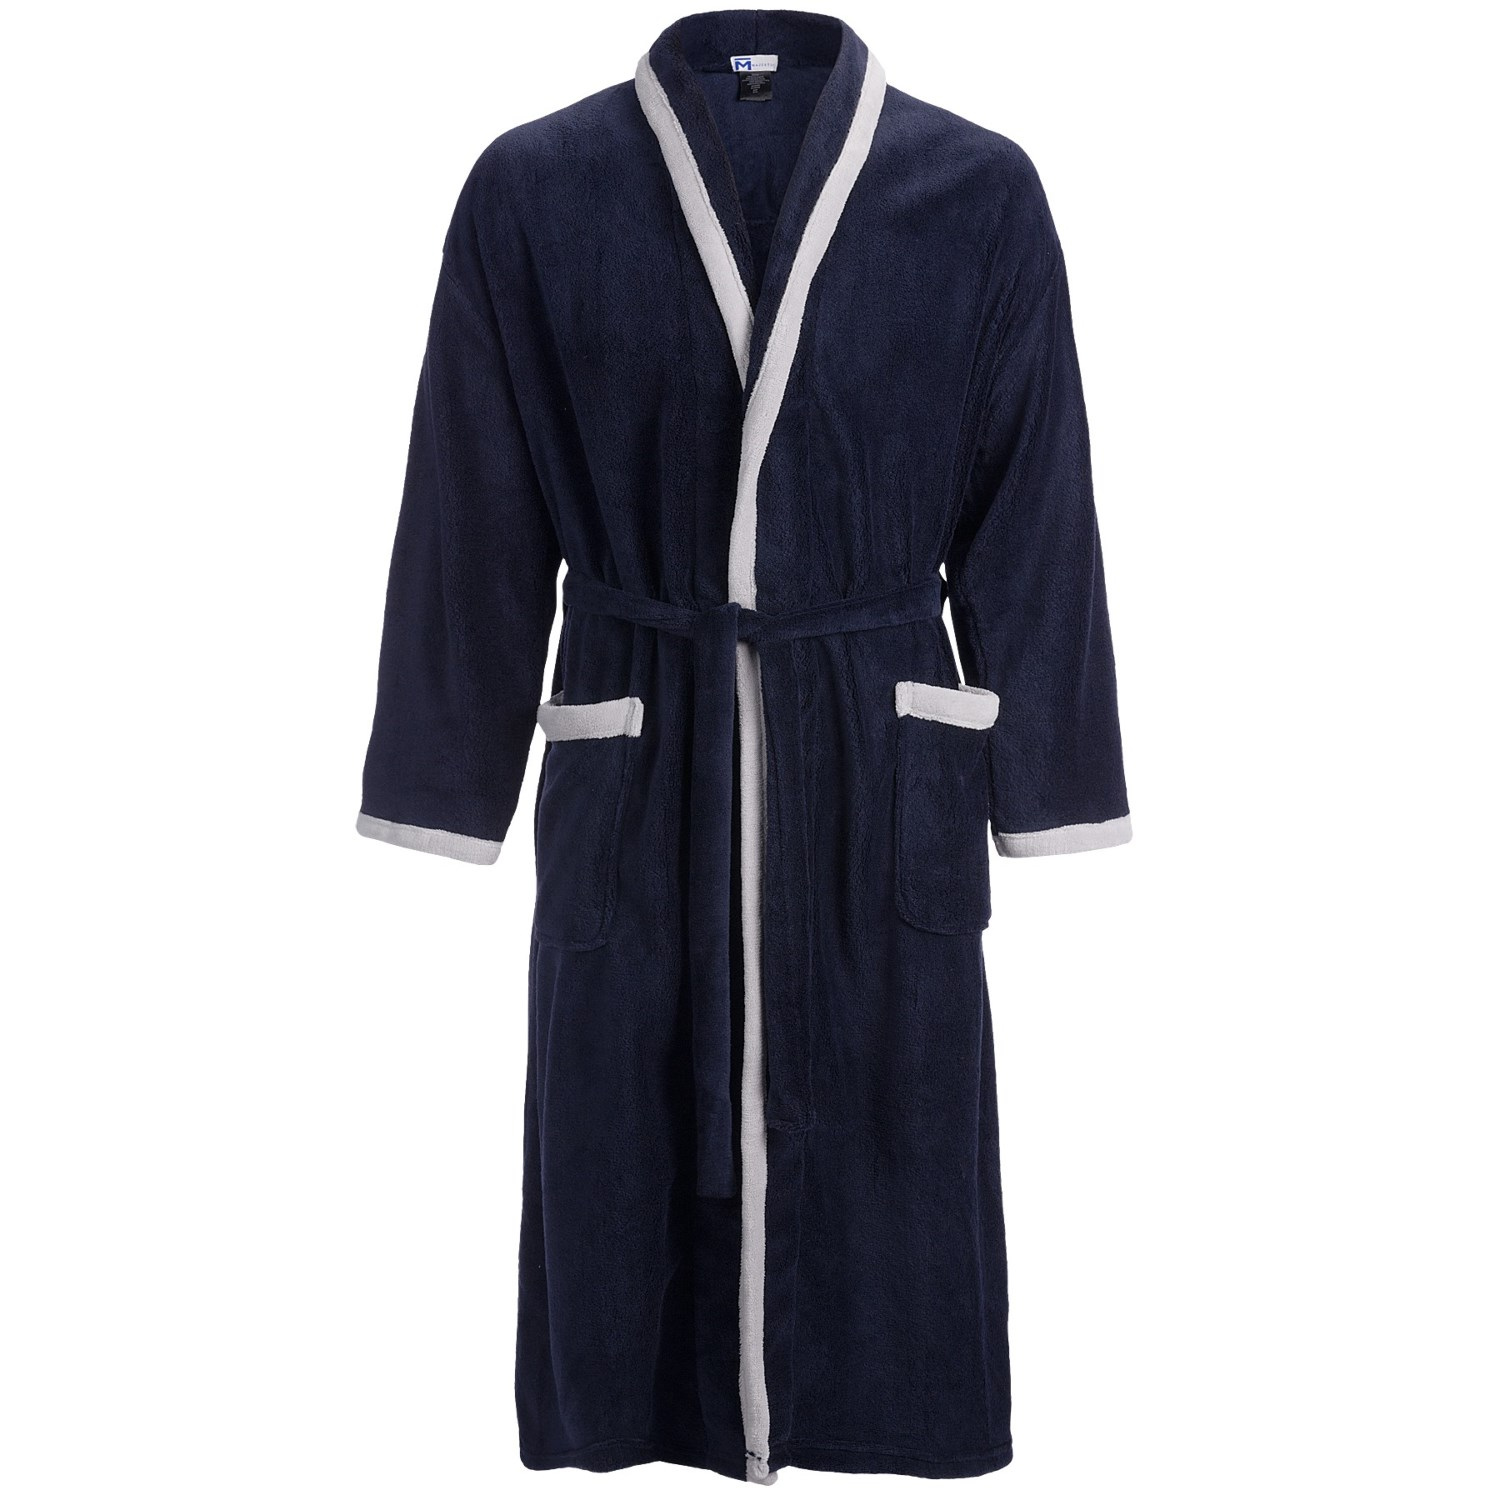 Rest easy with Men's Robes from Kohl's. Robes for Men are perfect for your laid-back look. Kohl's offers many different styles and types of men's sleepwear, like big & tall robes, men's white robes, and men's Residence robes.